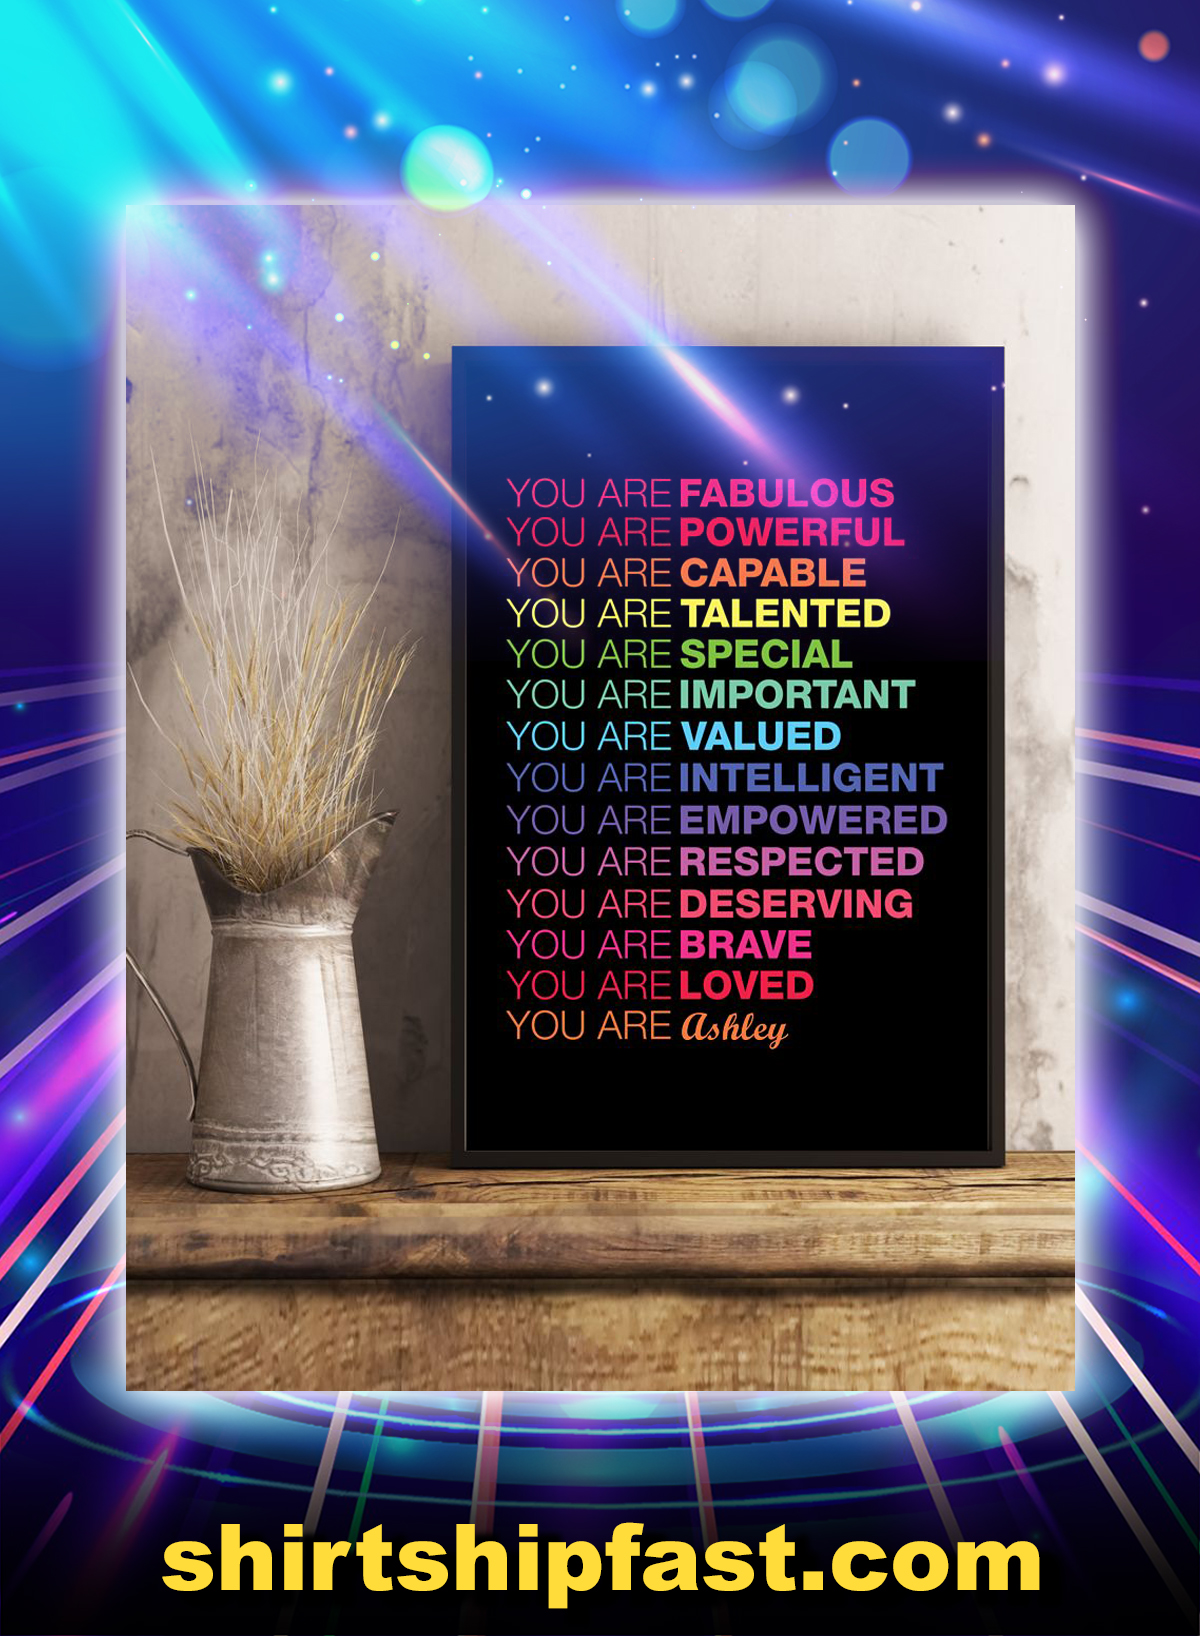 You are fabulous powerful personalized vertical poster - Picture 2